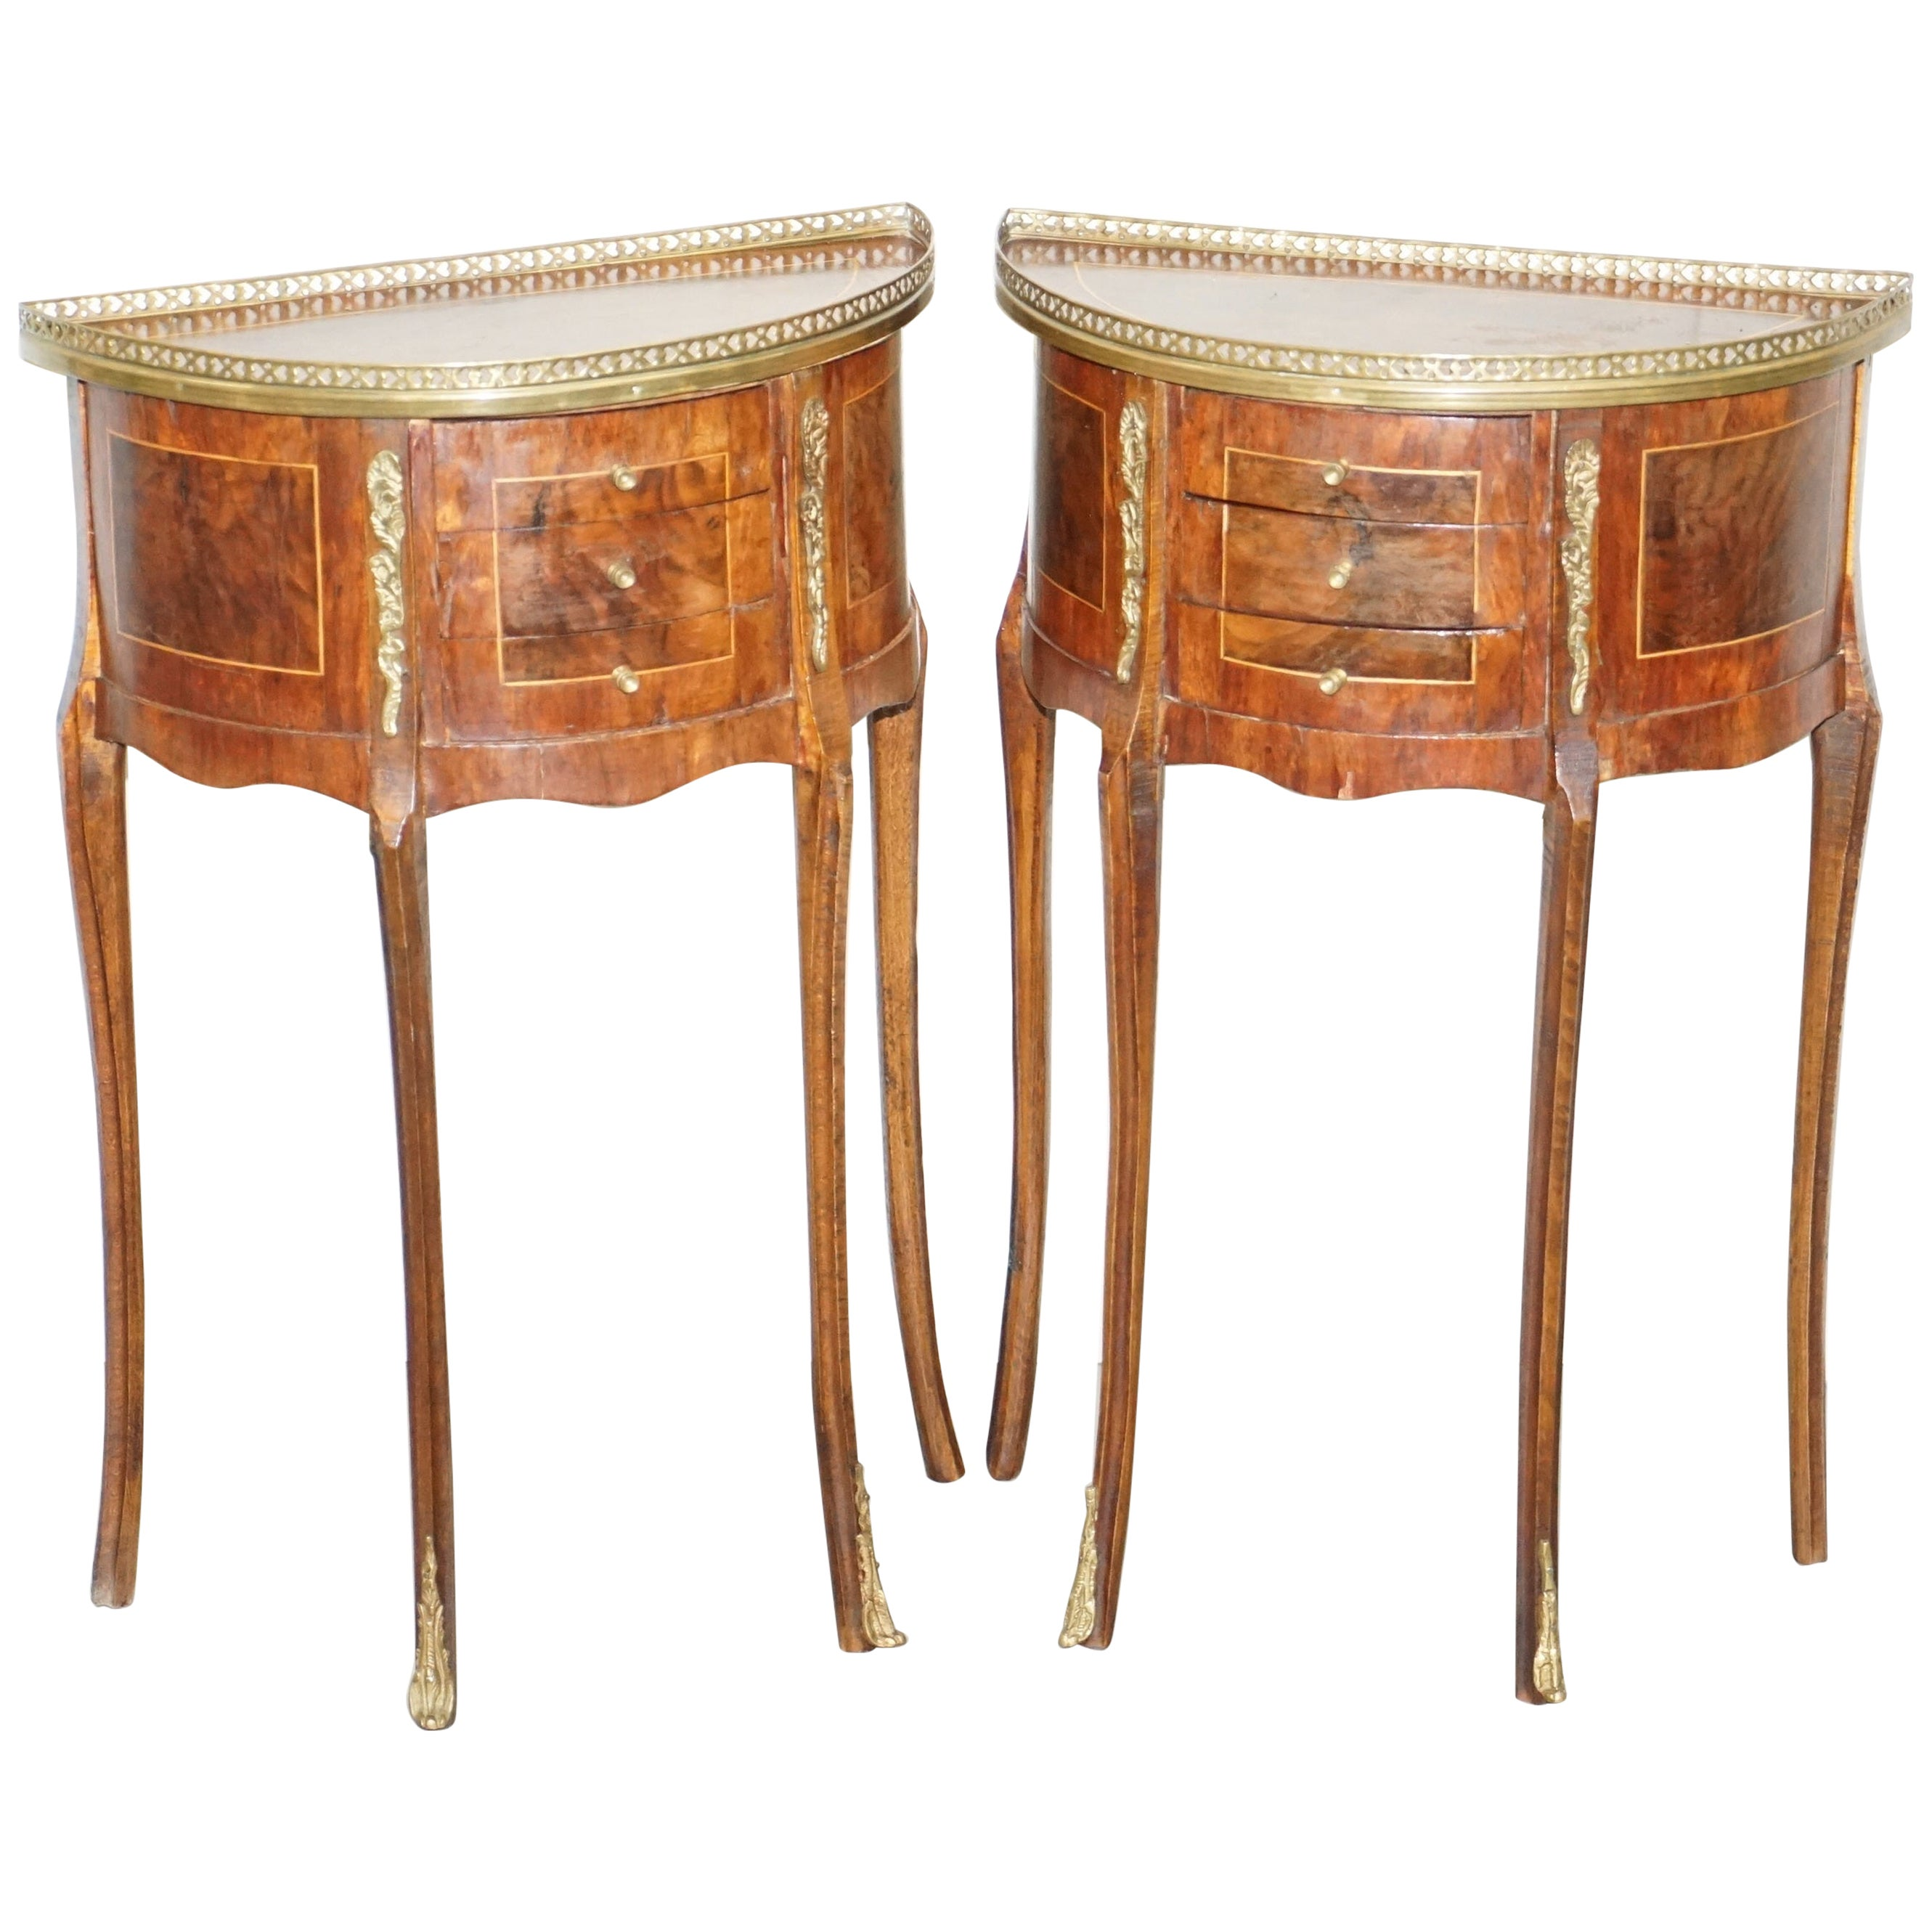 Pair of circa 1900 French Burr Walnut Brass Gallery Rail Demilune Side Tables